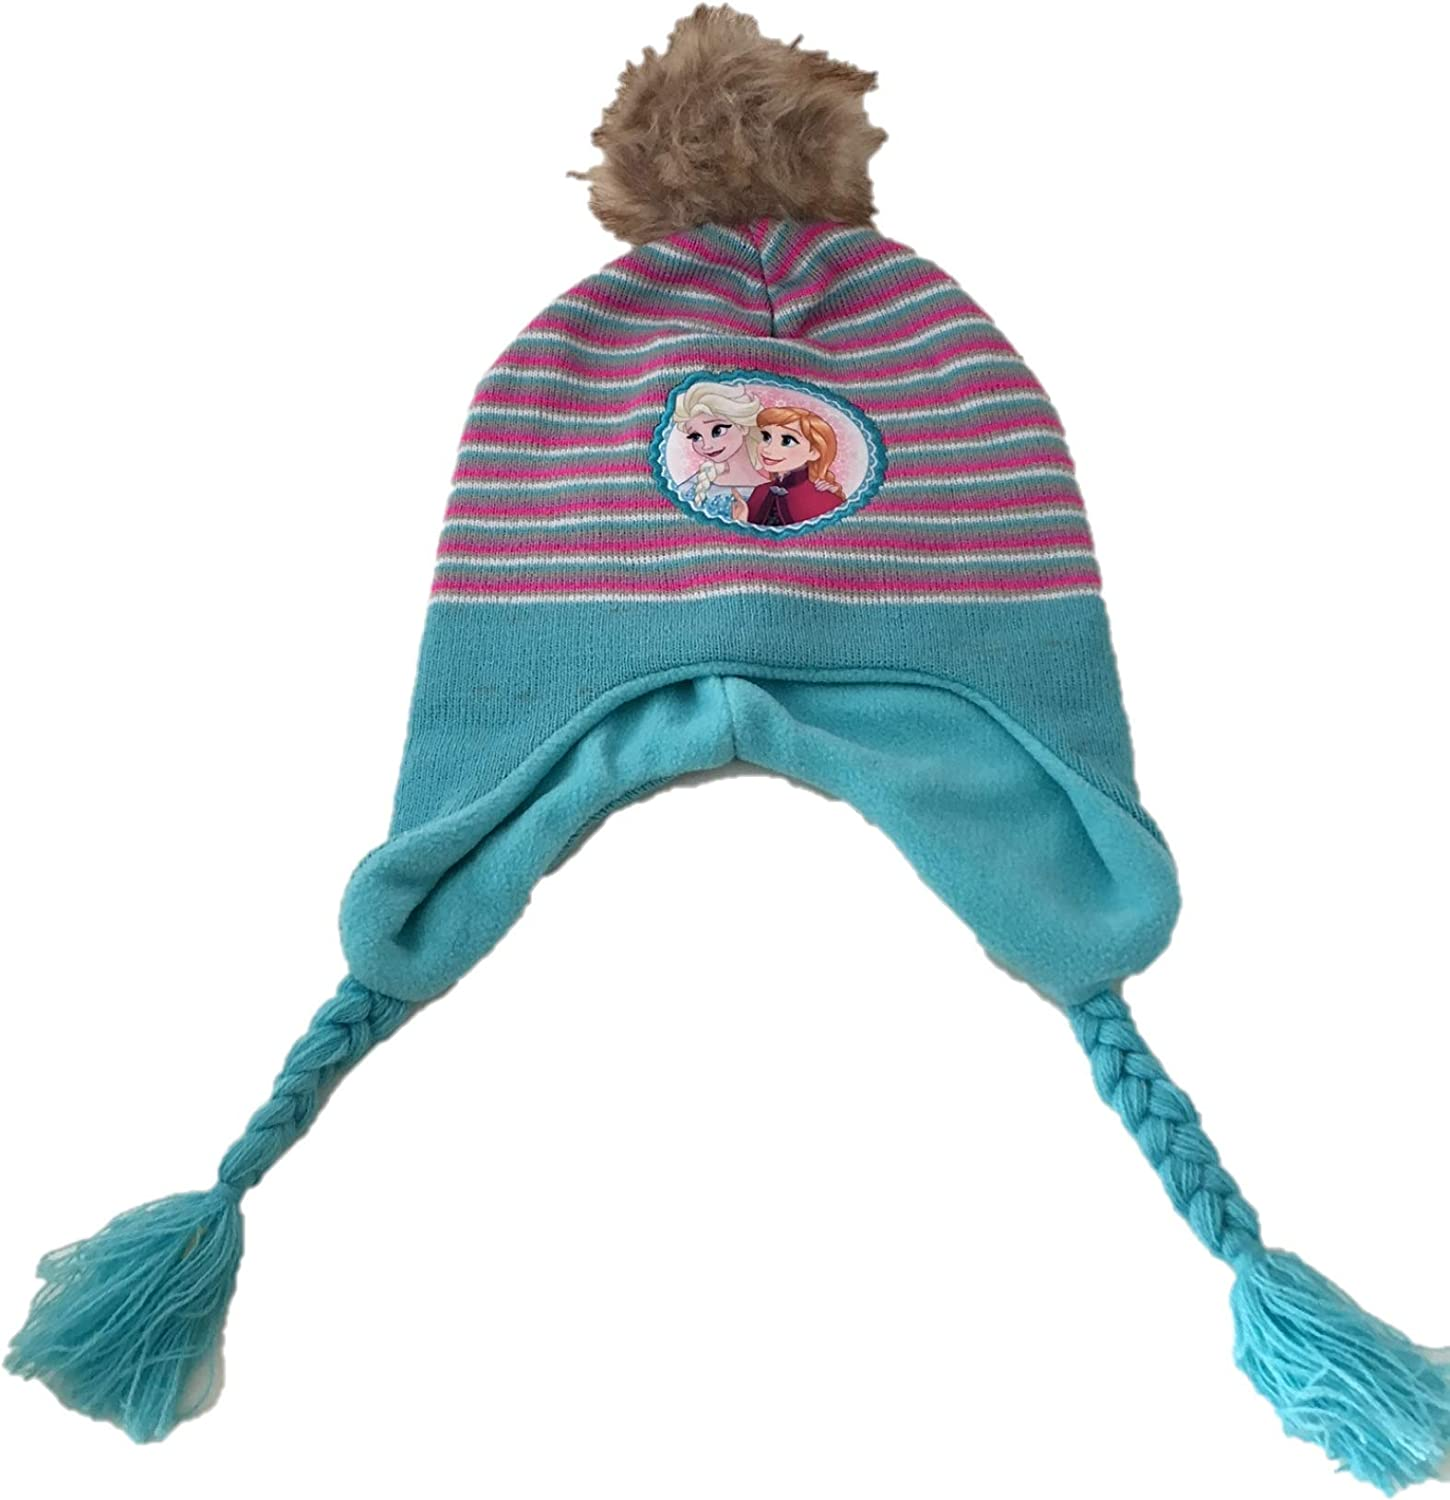 Disney Wiesner Products Frozen Peruvian Winter Hat with Faux Fur Pom Pom Blue Pink